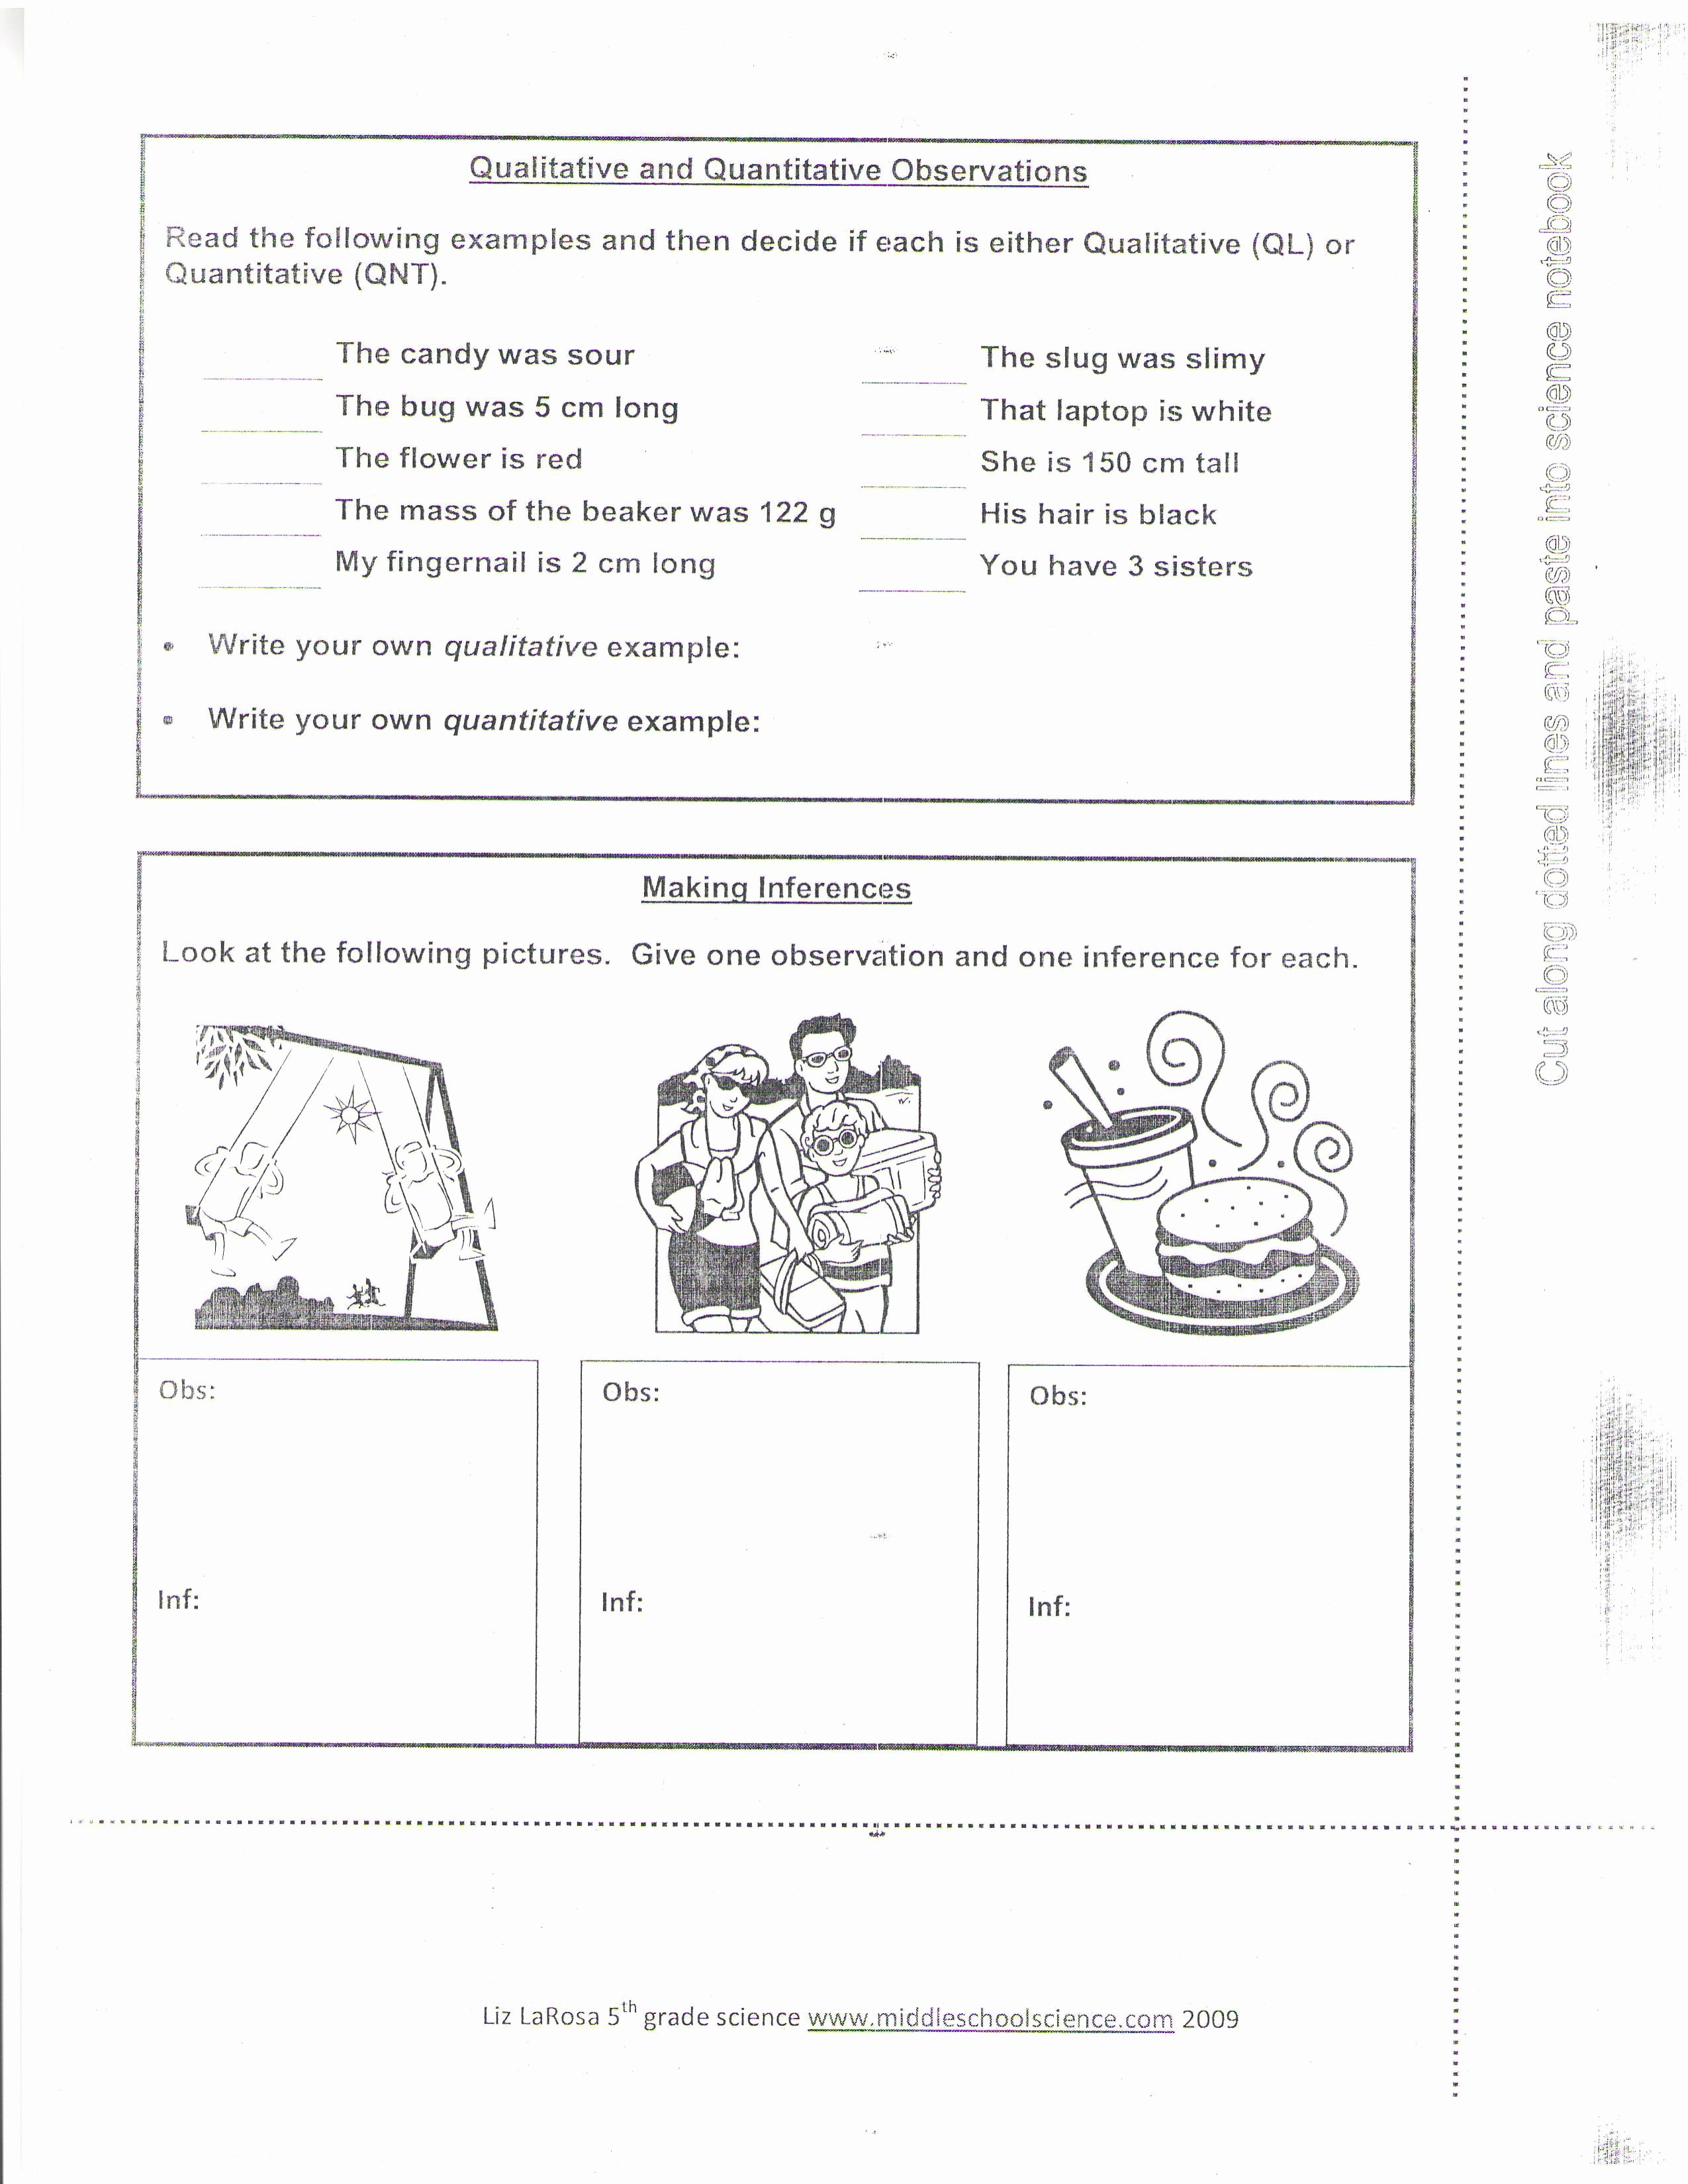 Qualitative Vs Quantitative Worksheet Luxury Qualitative and Quantitative Observations Worksheet